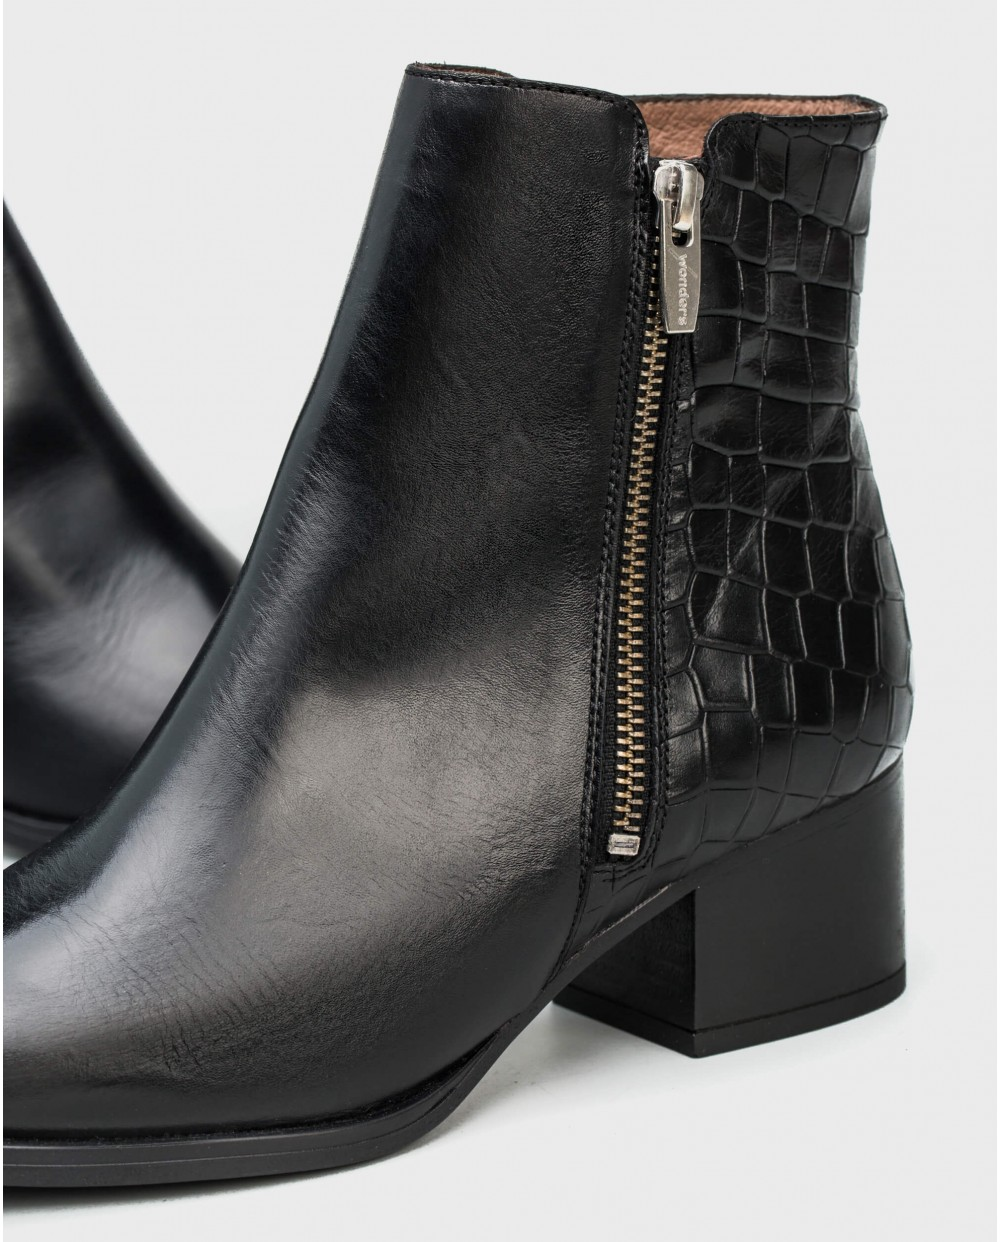 Wonders-Ankle Boots-Mock/crock ankle boot